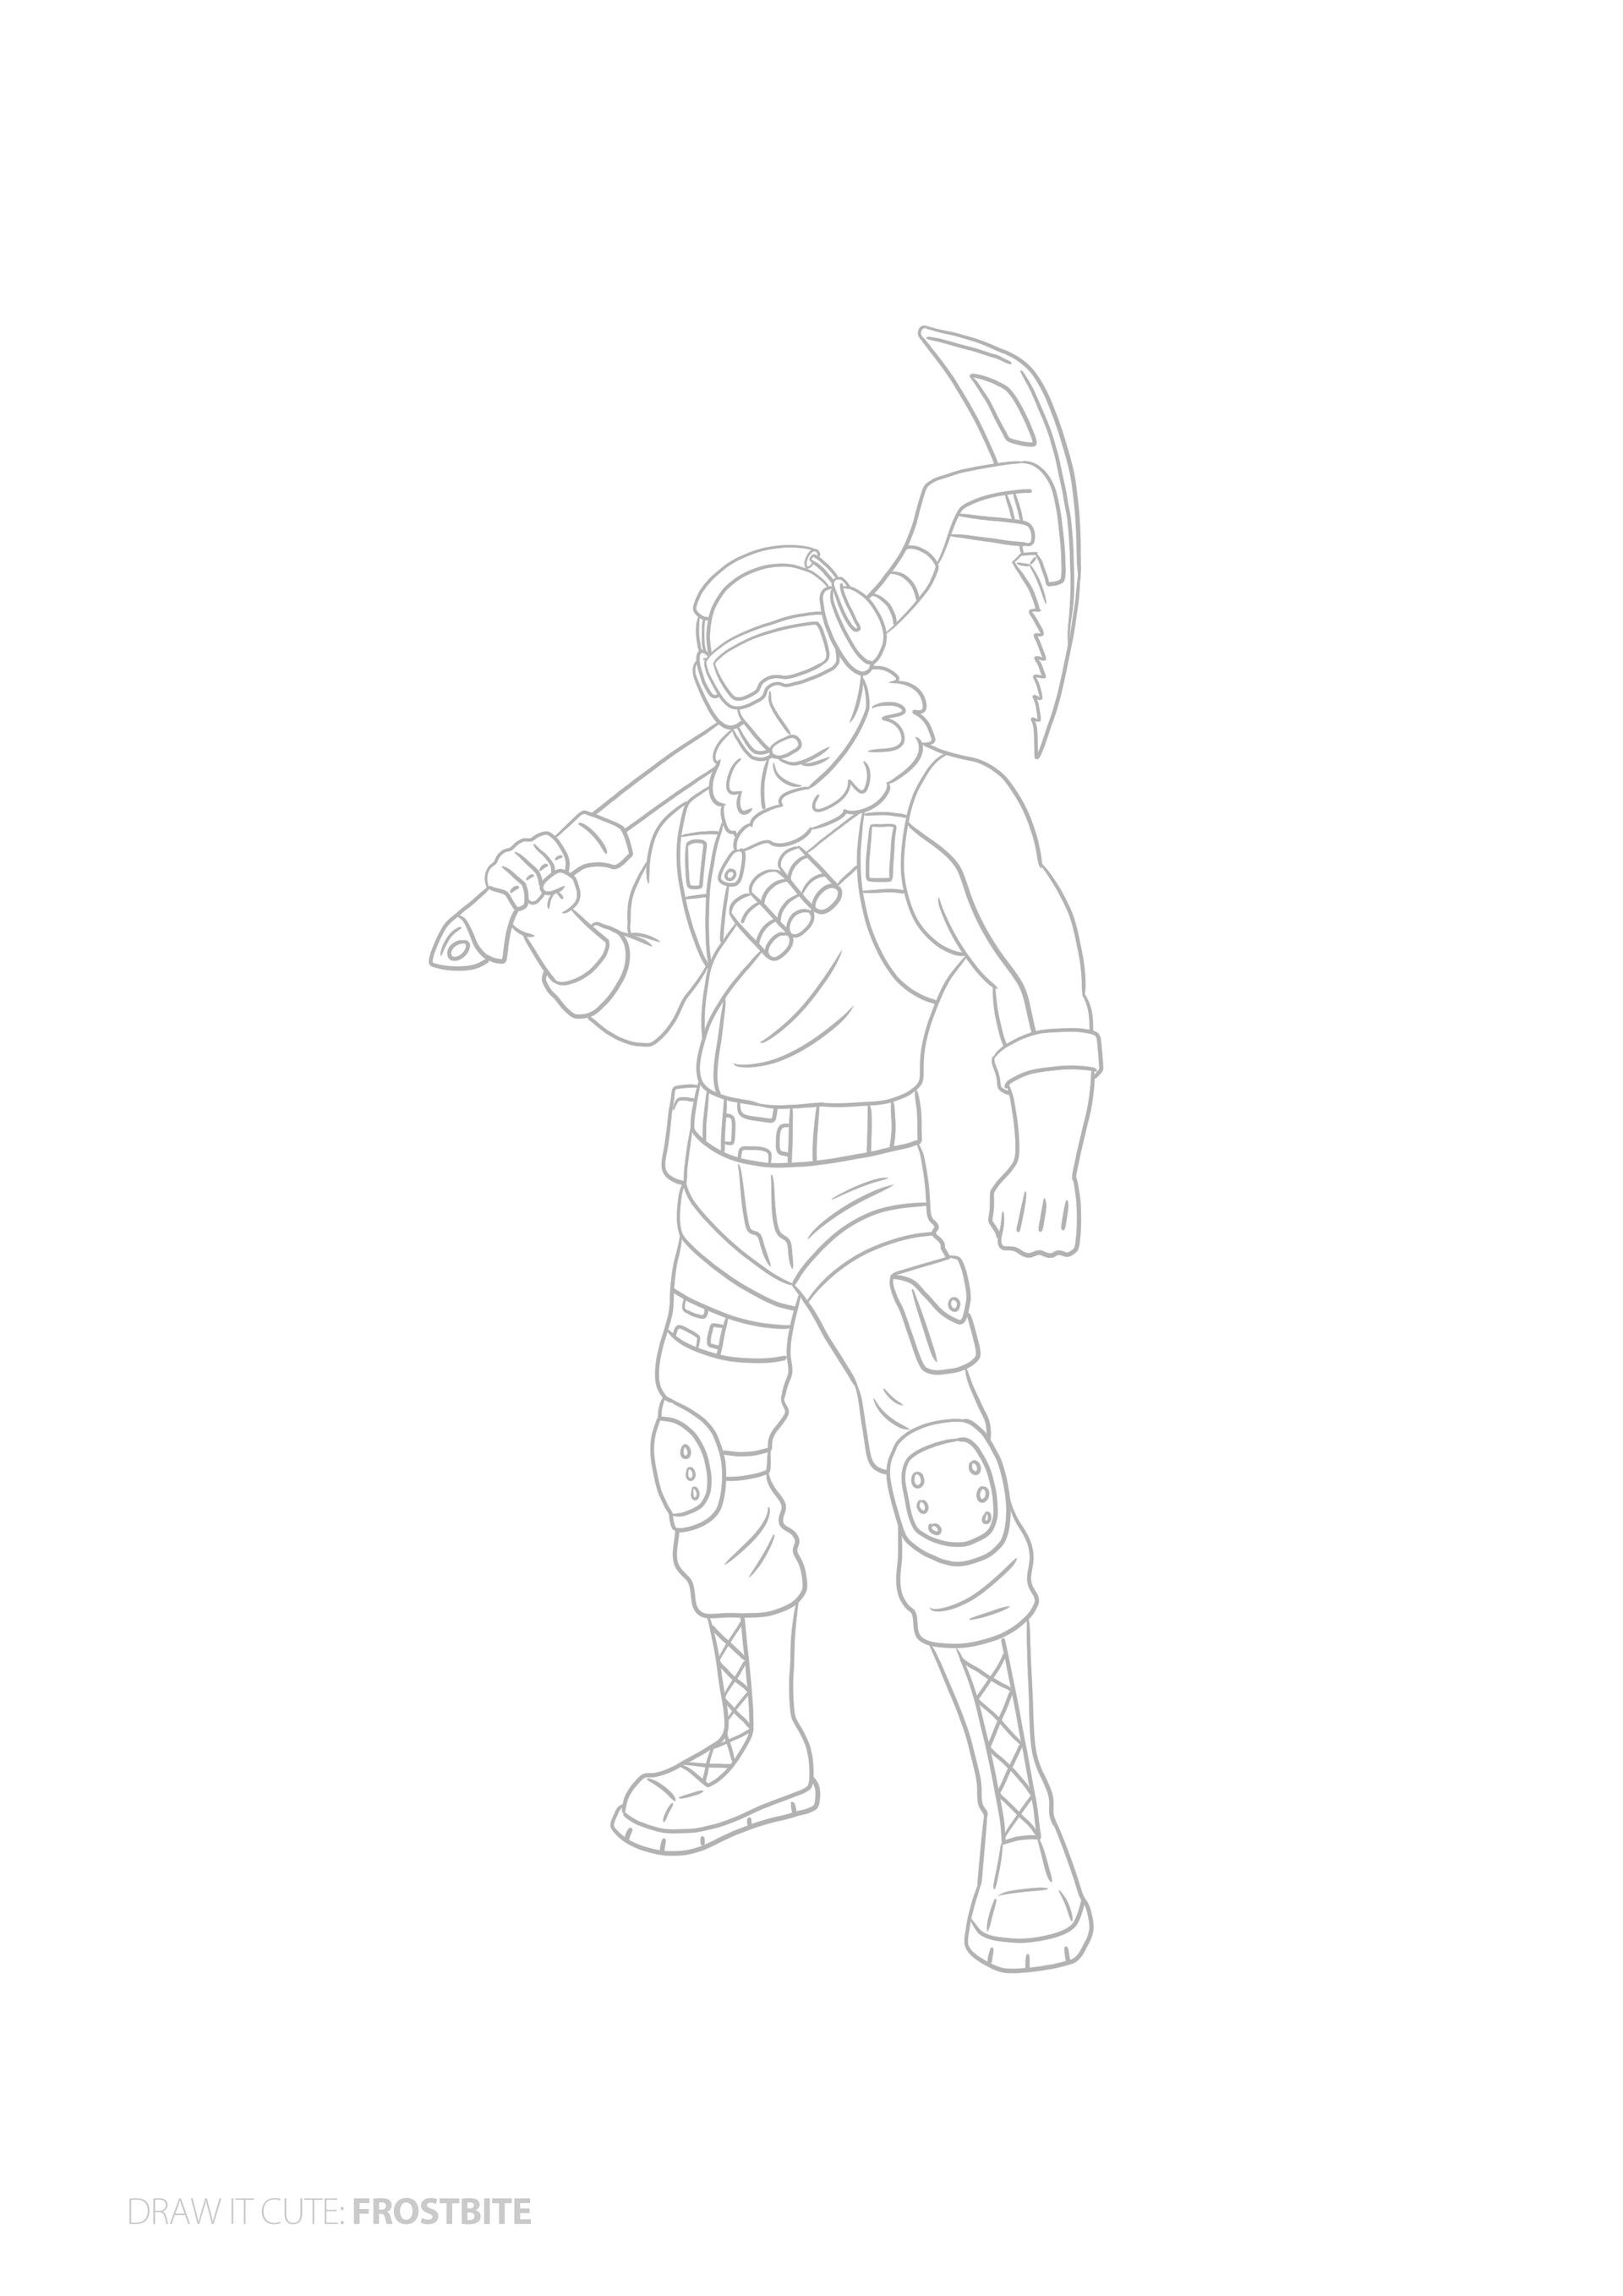 Interesting Guides Fortnite Frostbite Skin How To Draw Child S Chicken Trooper Doodle Gets Made Into Drawings Drawing Tutorial Illustration Character Design